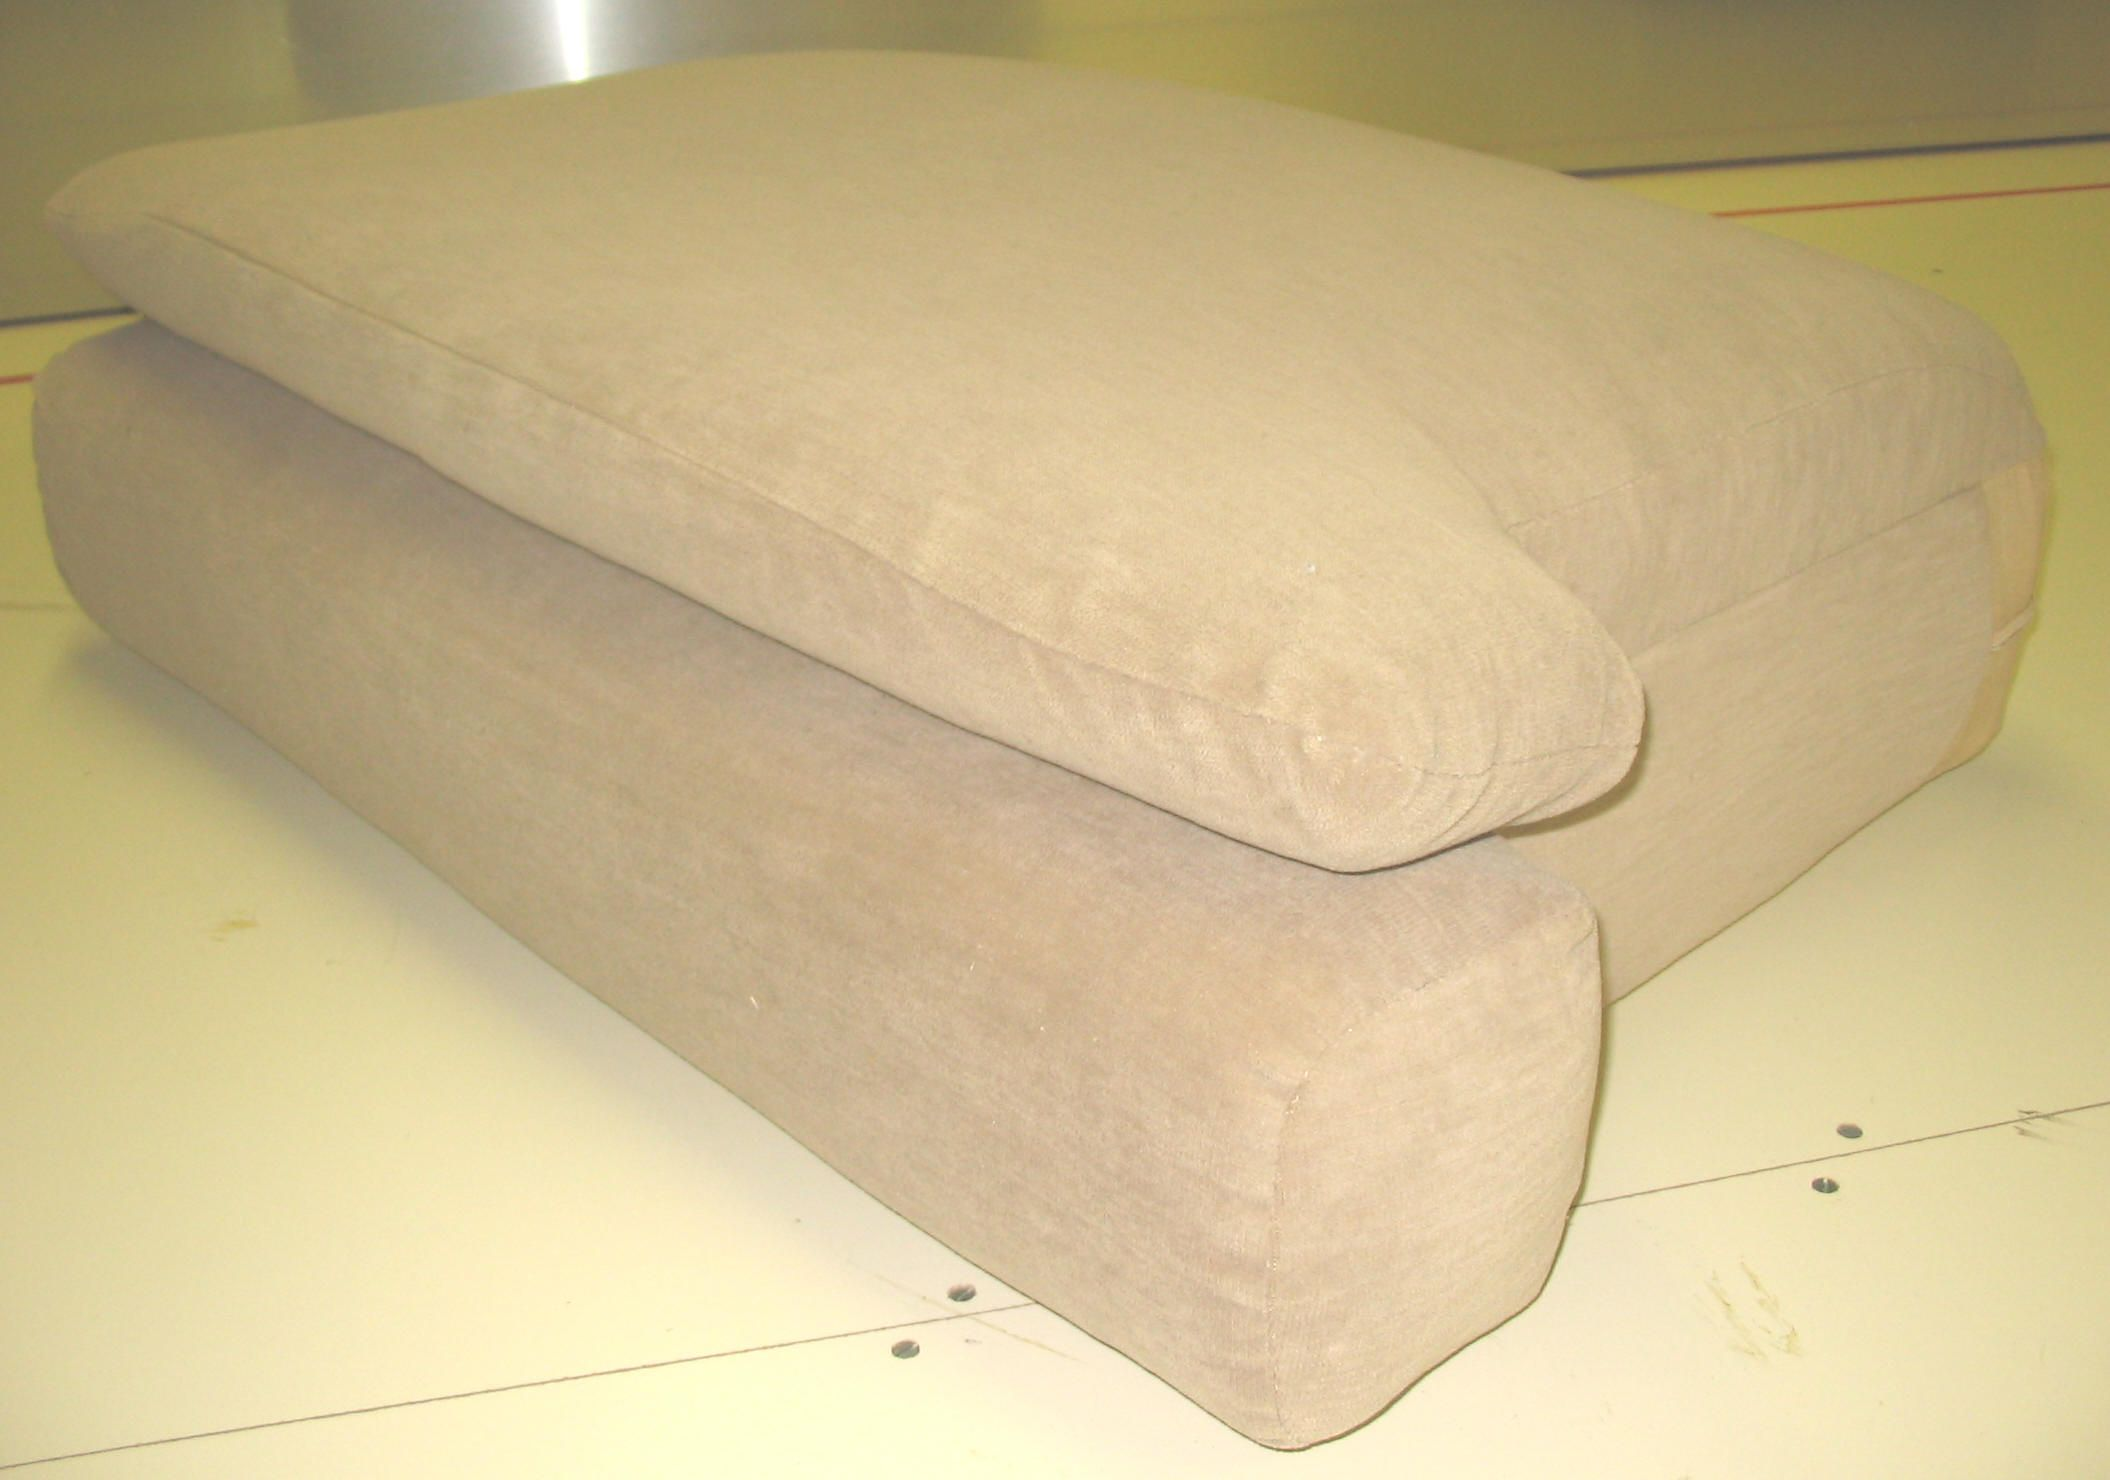 Sofa With Foam Seats Cut To Size Foam Sofa Replacement Cushion Replacement Seat